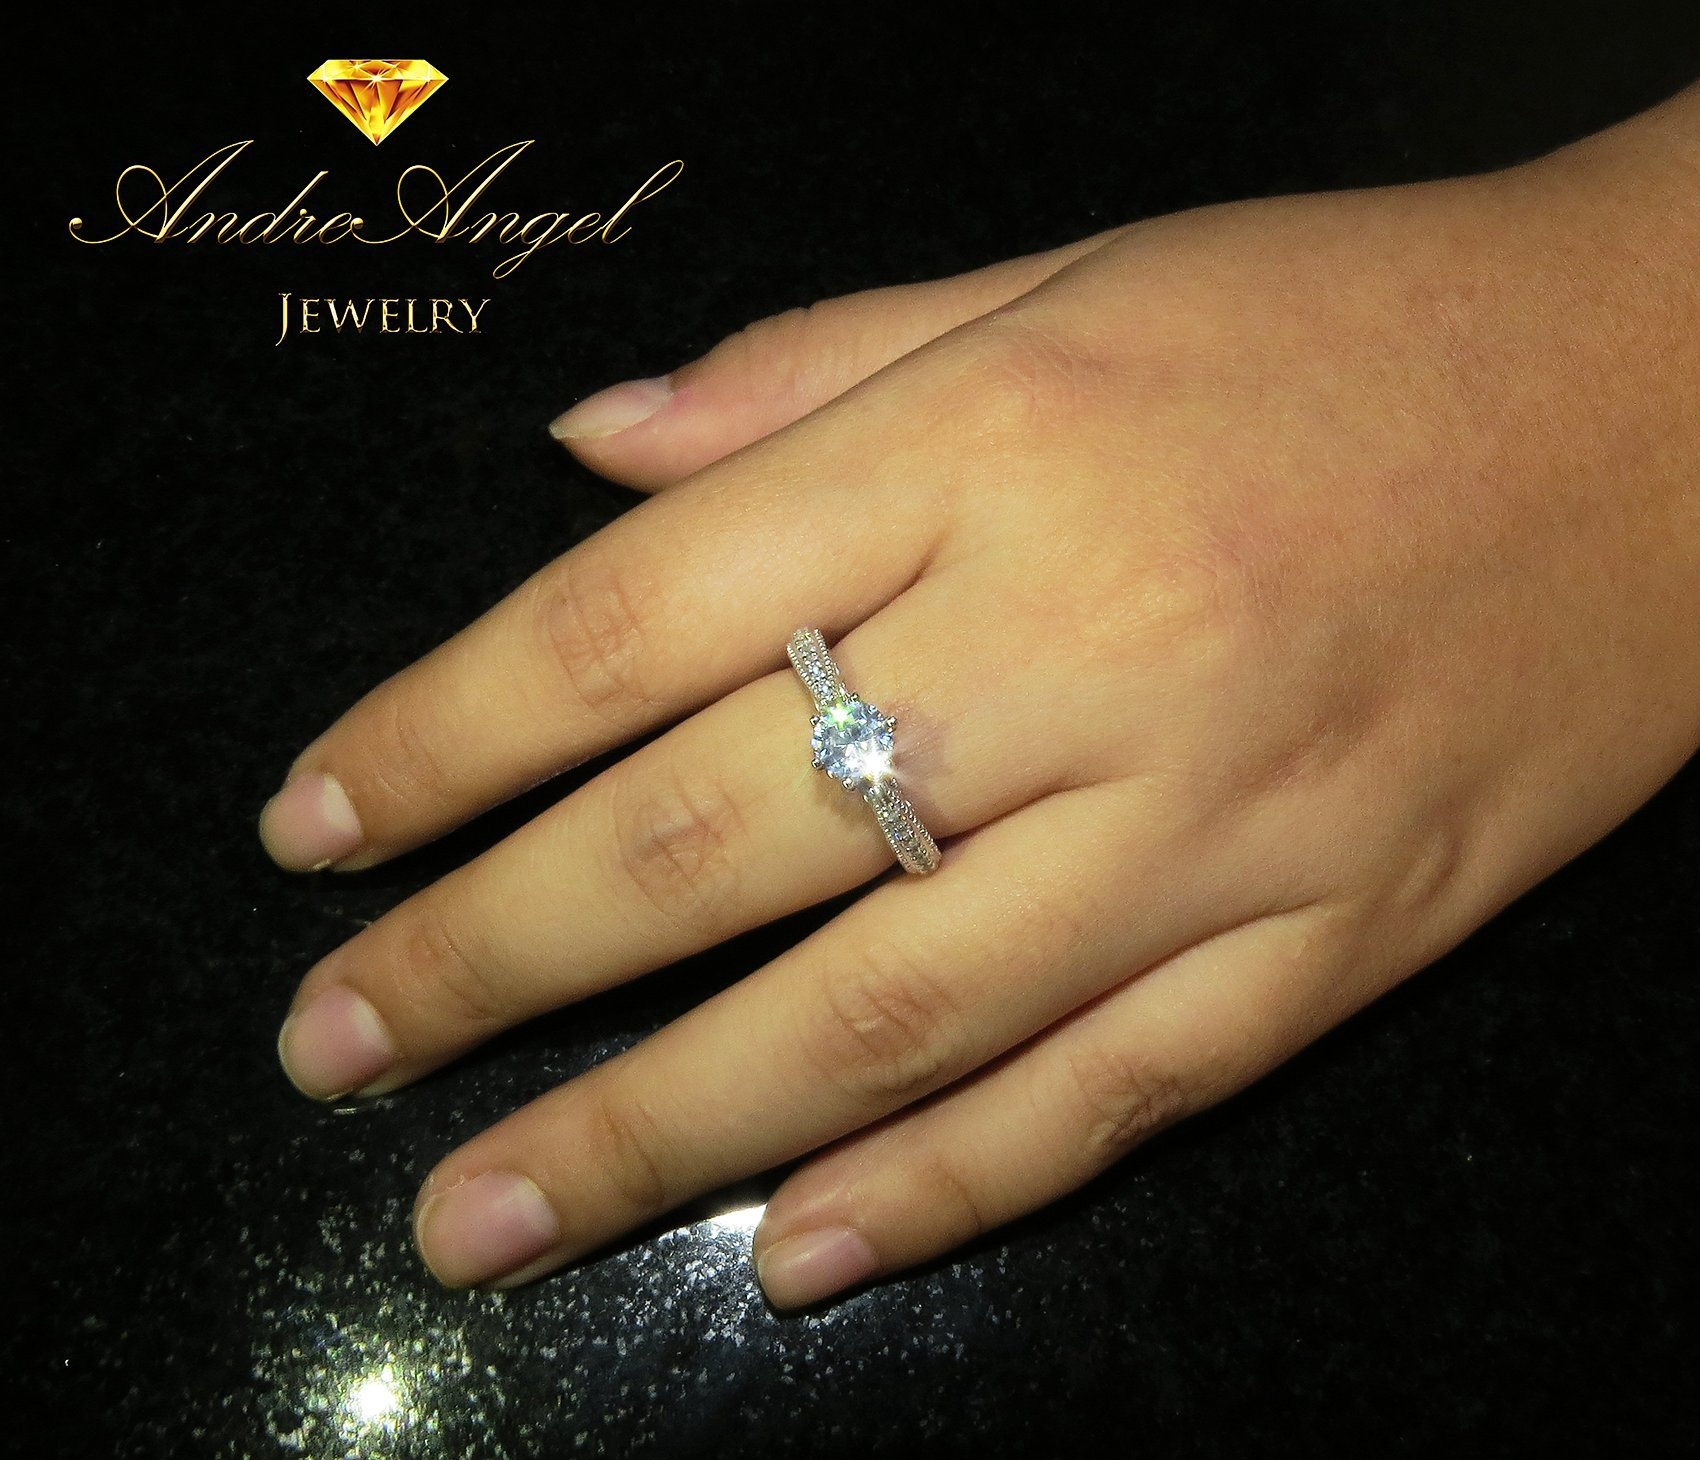 AndreAngel Women Ring White Gold 18K Princess Cut/Lab Diamond 6 mm Carat Cubic Zirconia AAA+/Bridal Birthday Dating Gift Anniversary Promise Engagement or Wedding Mother's Day (6) by AndreAngel (Image #2)